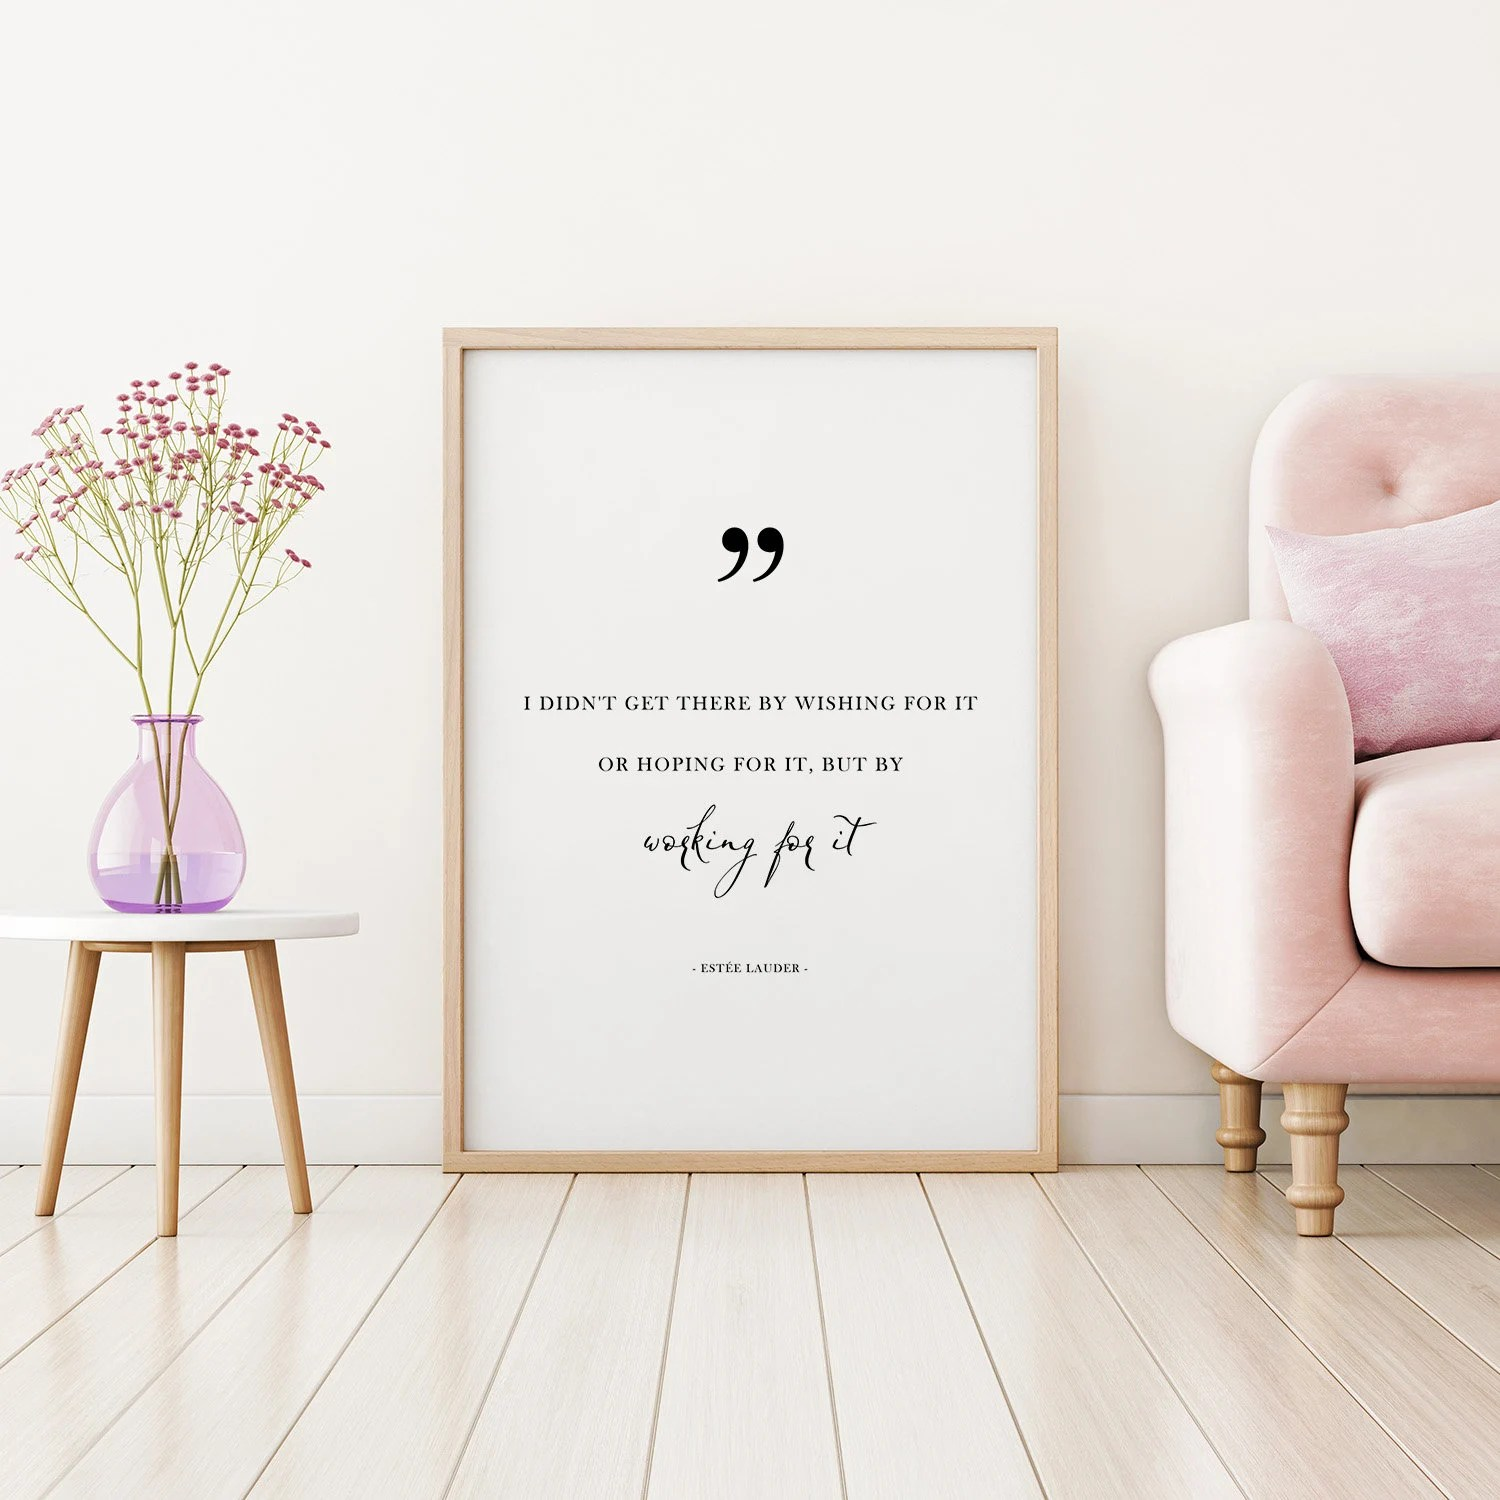 wishing chair photo frame slipcovers canada work for it wall art feminism print quote etsy image 0